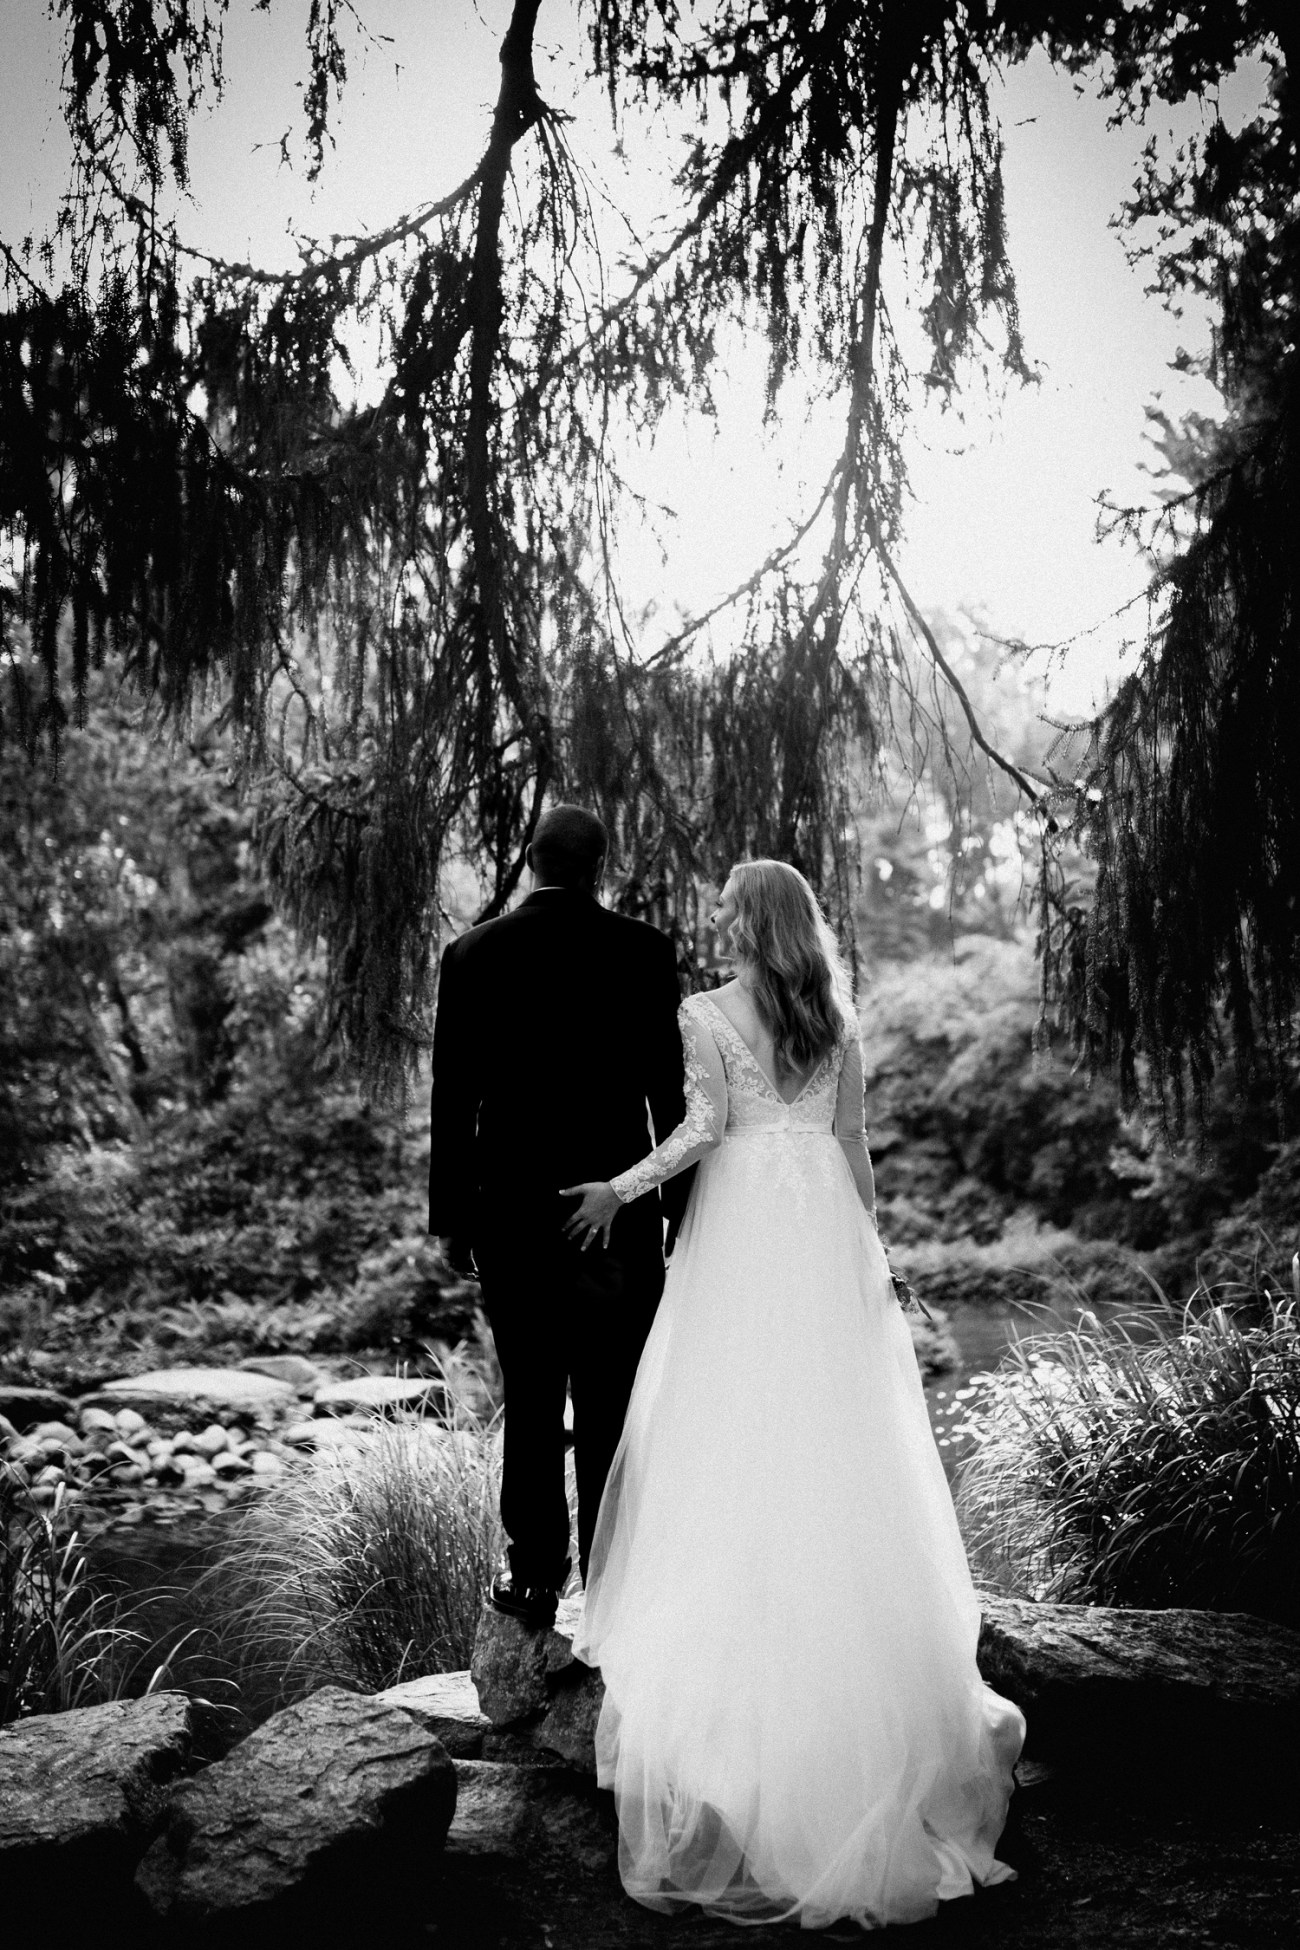 Bride and Groom portraits at Sayen House and Gardens